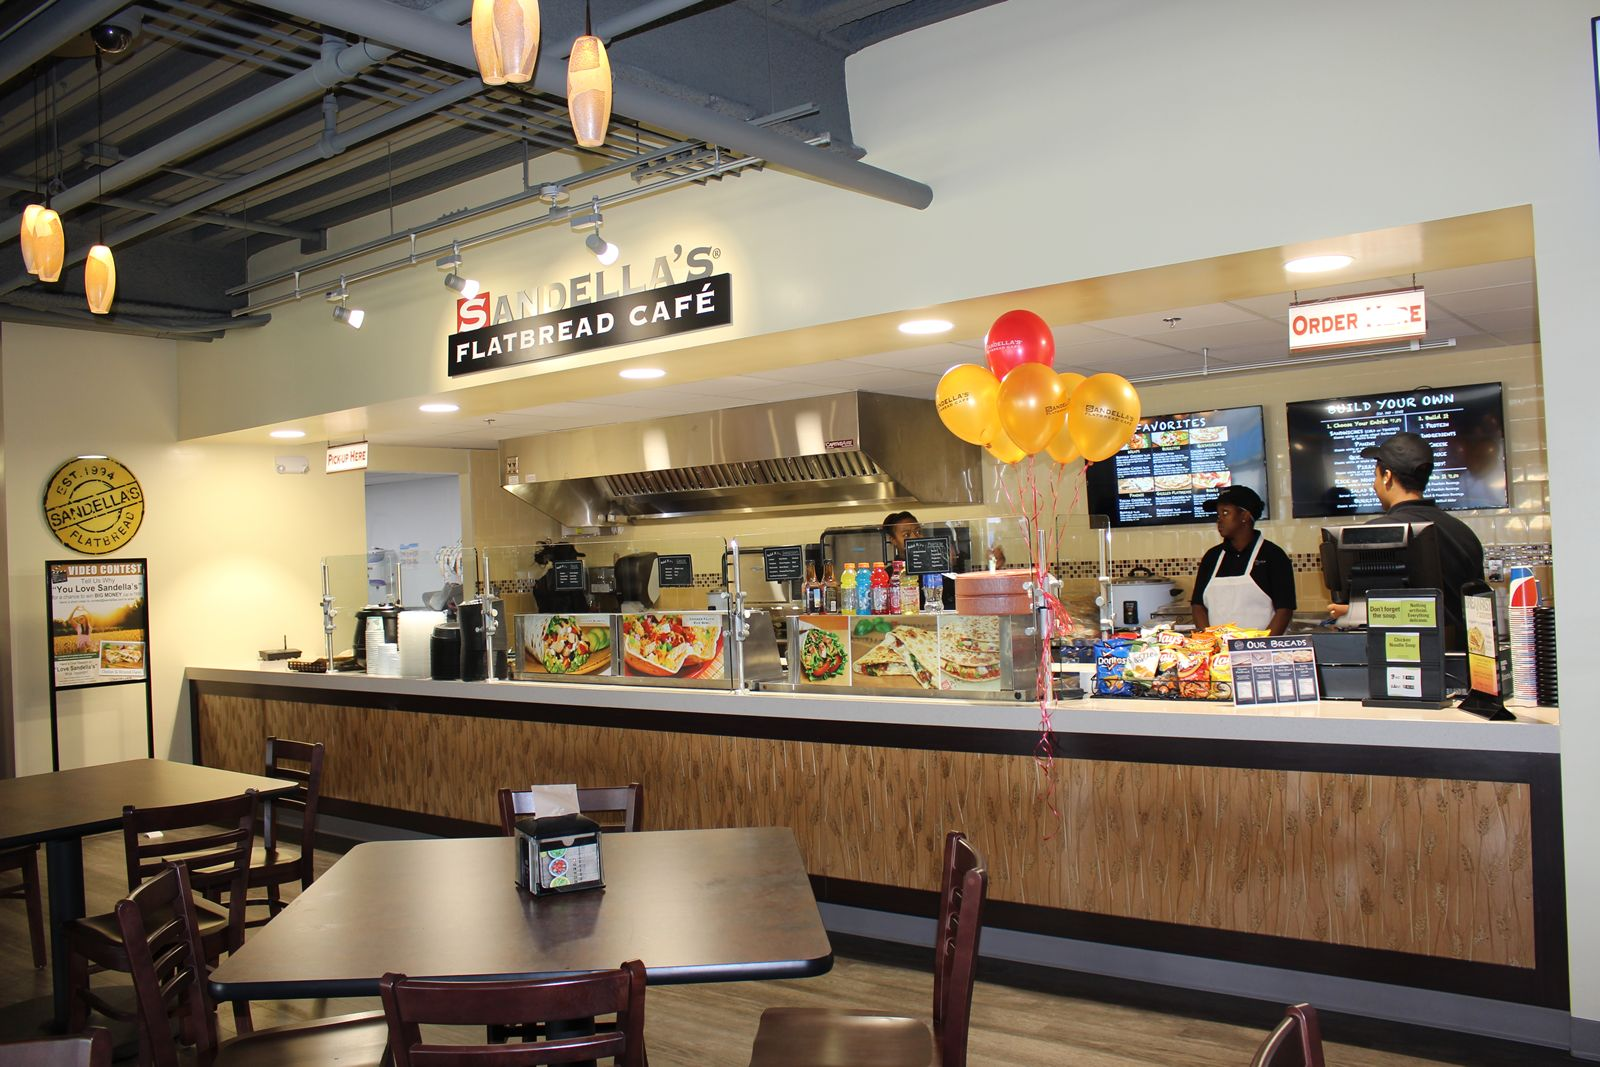 Diversity Food Brands Plans 2019 Expansion for Sandella's Flatbread Café